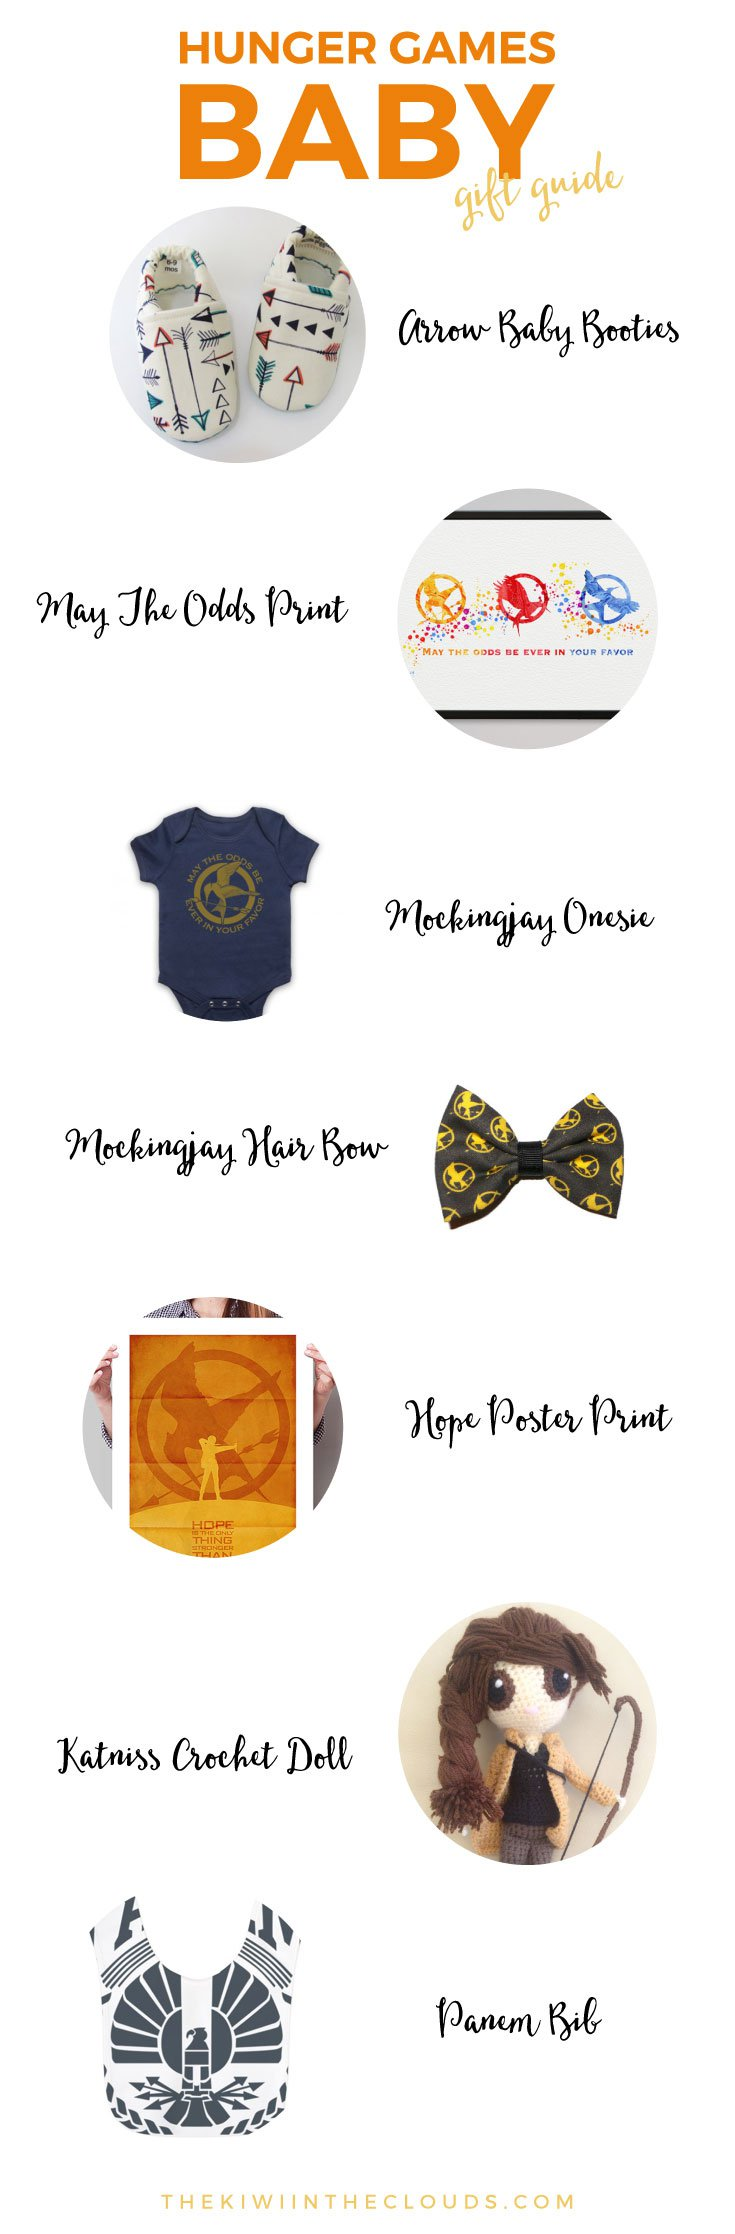 Hunger Games Baby Gift Guide | If you can't get enough of the Hunger Games and have a little tribute on the way, then click through to check out the cutest Hunger Games products for little ones.